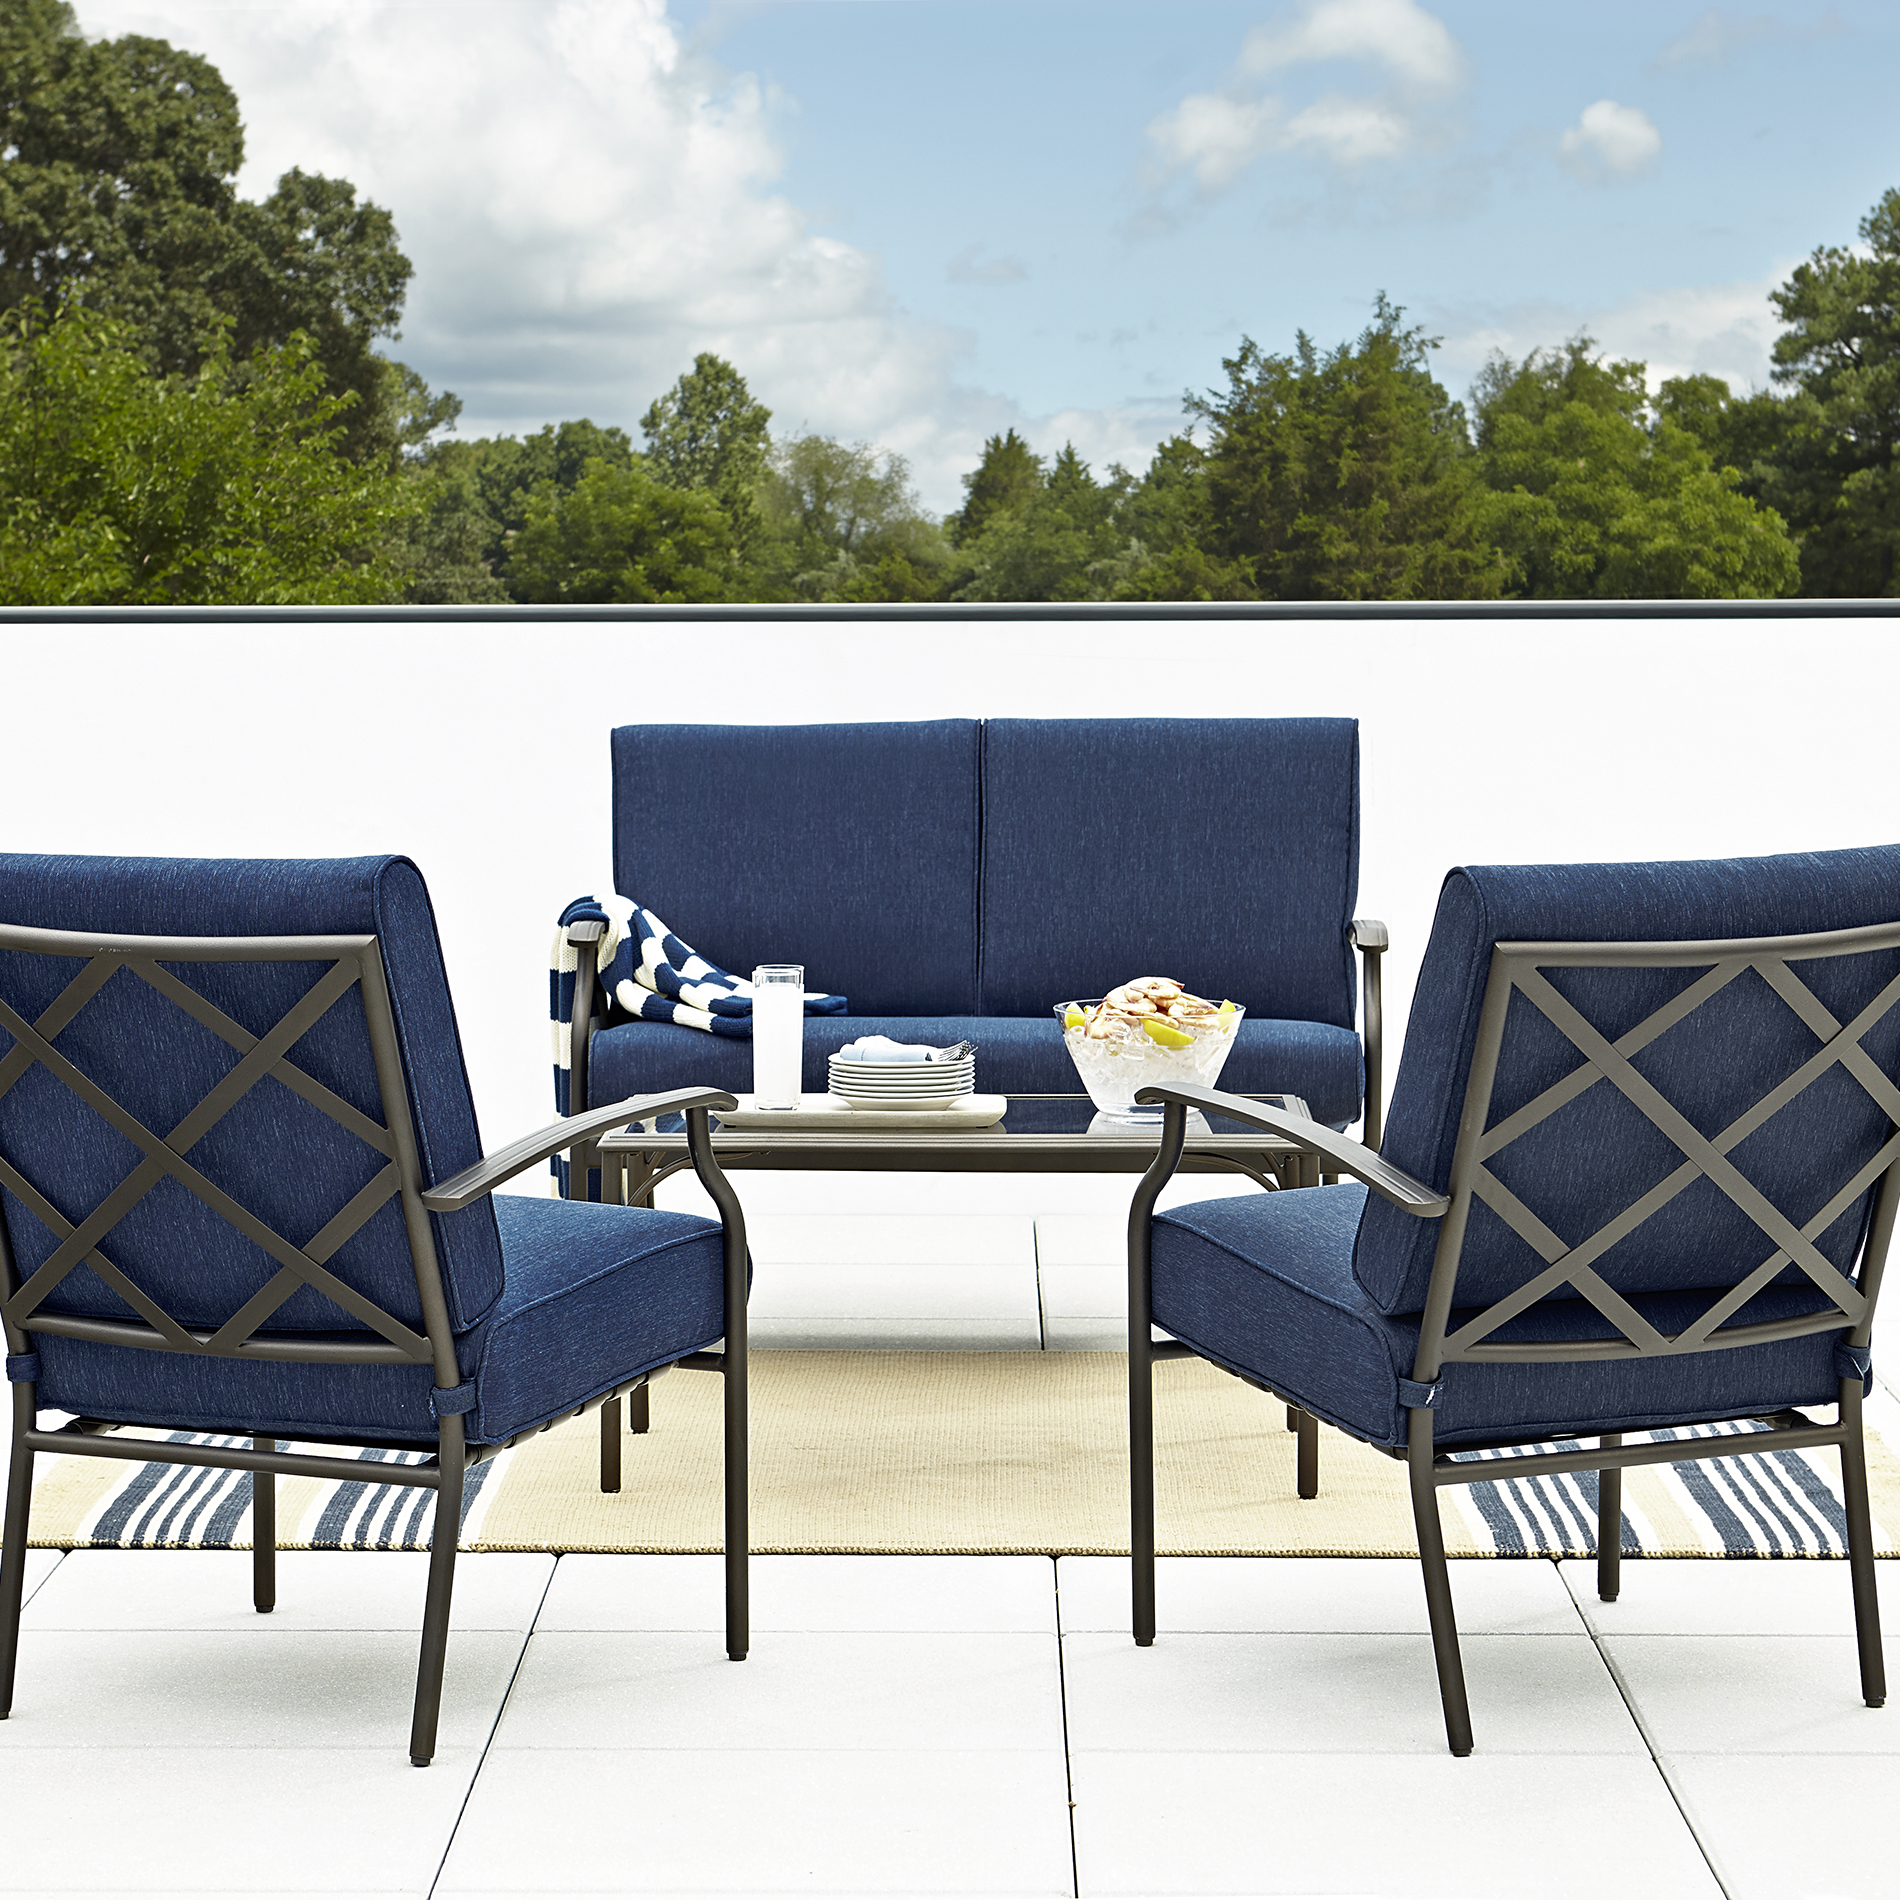 Grand Resort Fairfax 4pc Seating Set- Blue Olefin